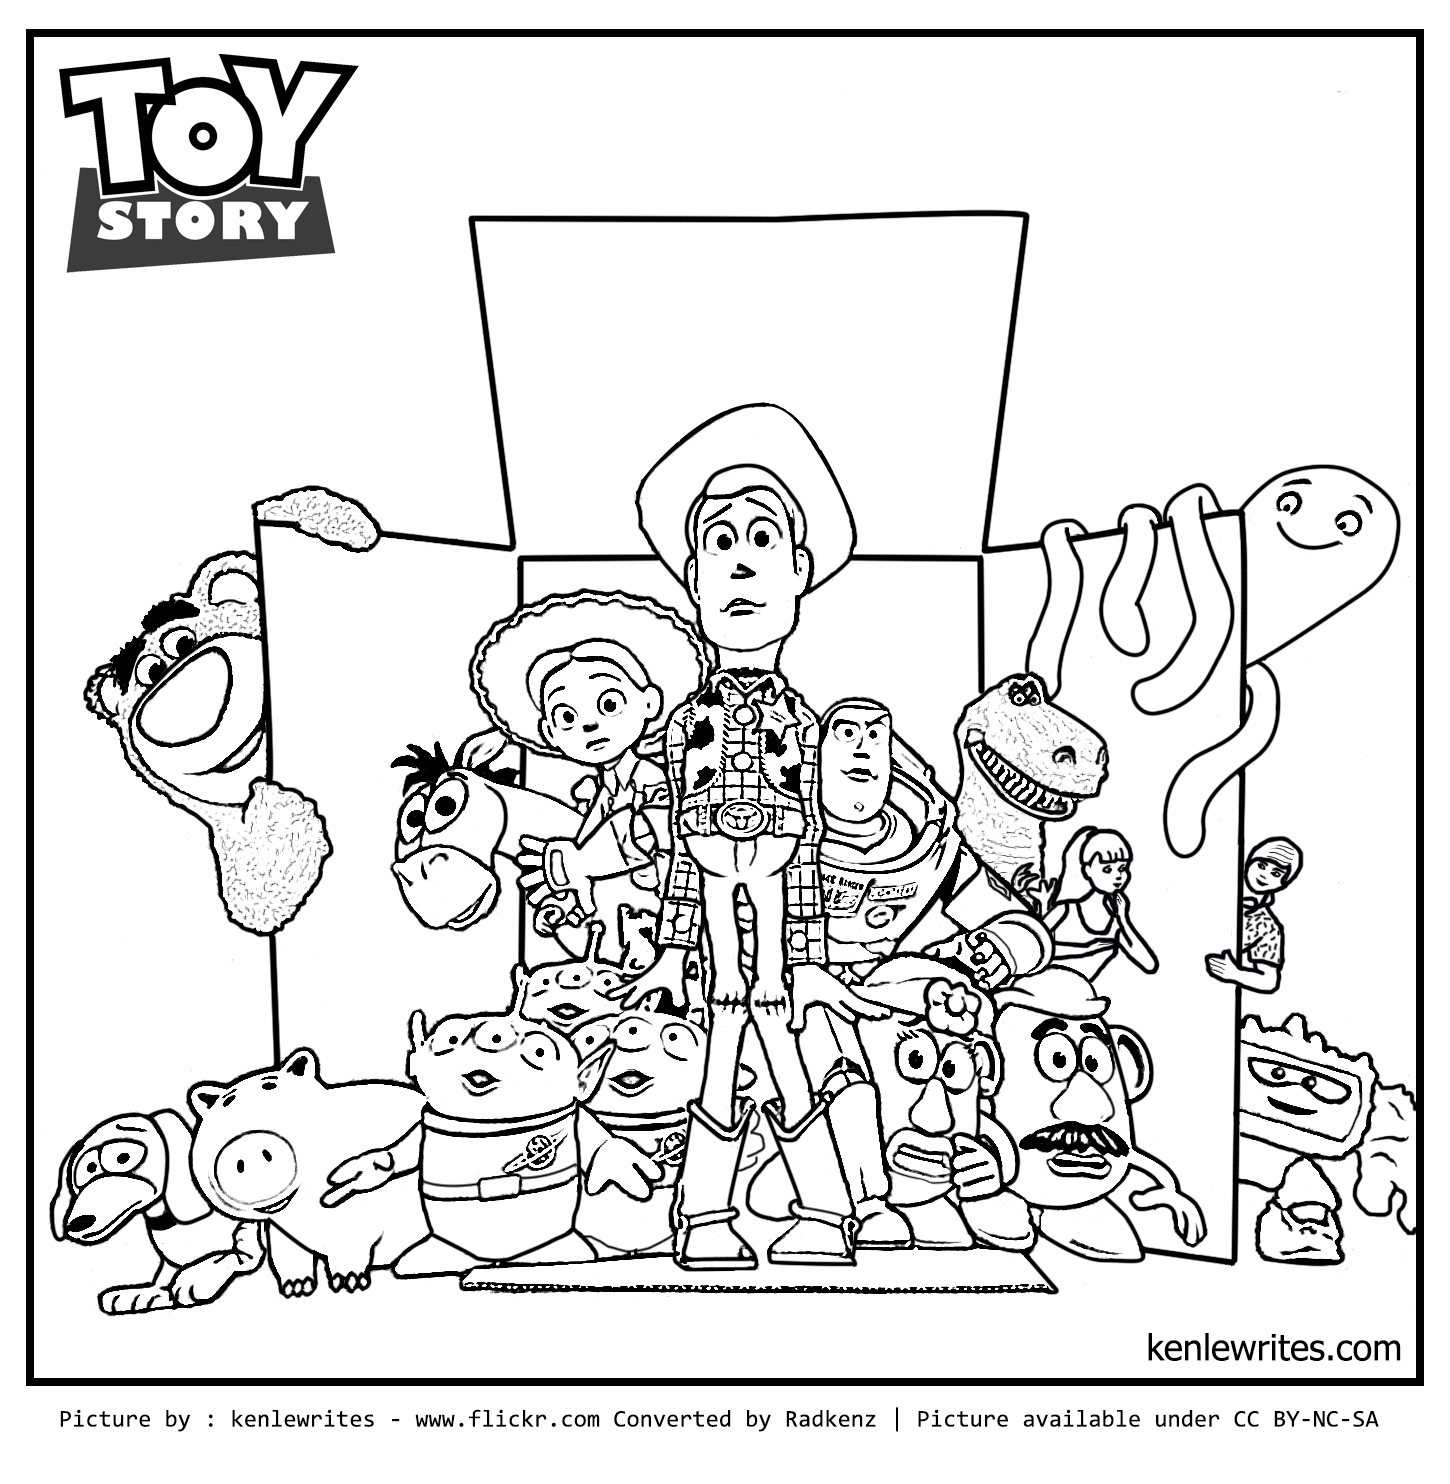 Fancy Toy Story Coloring Pages For Coloring Pages For Kids